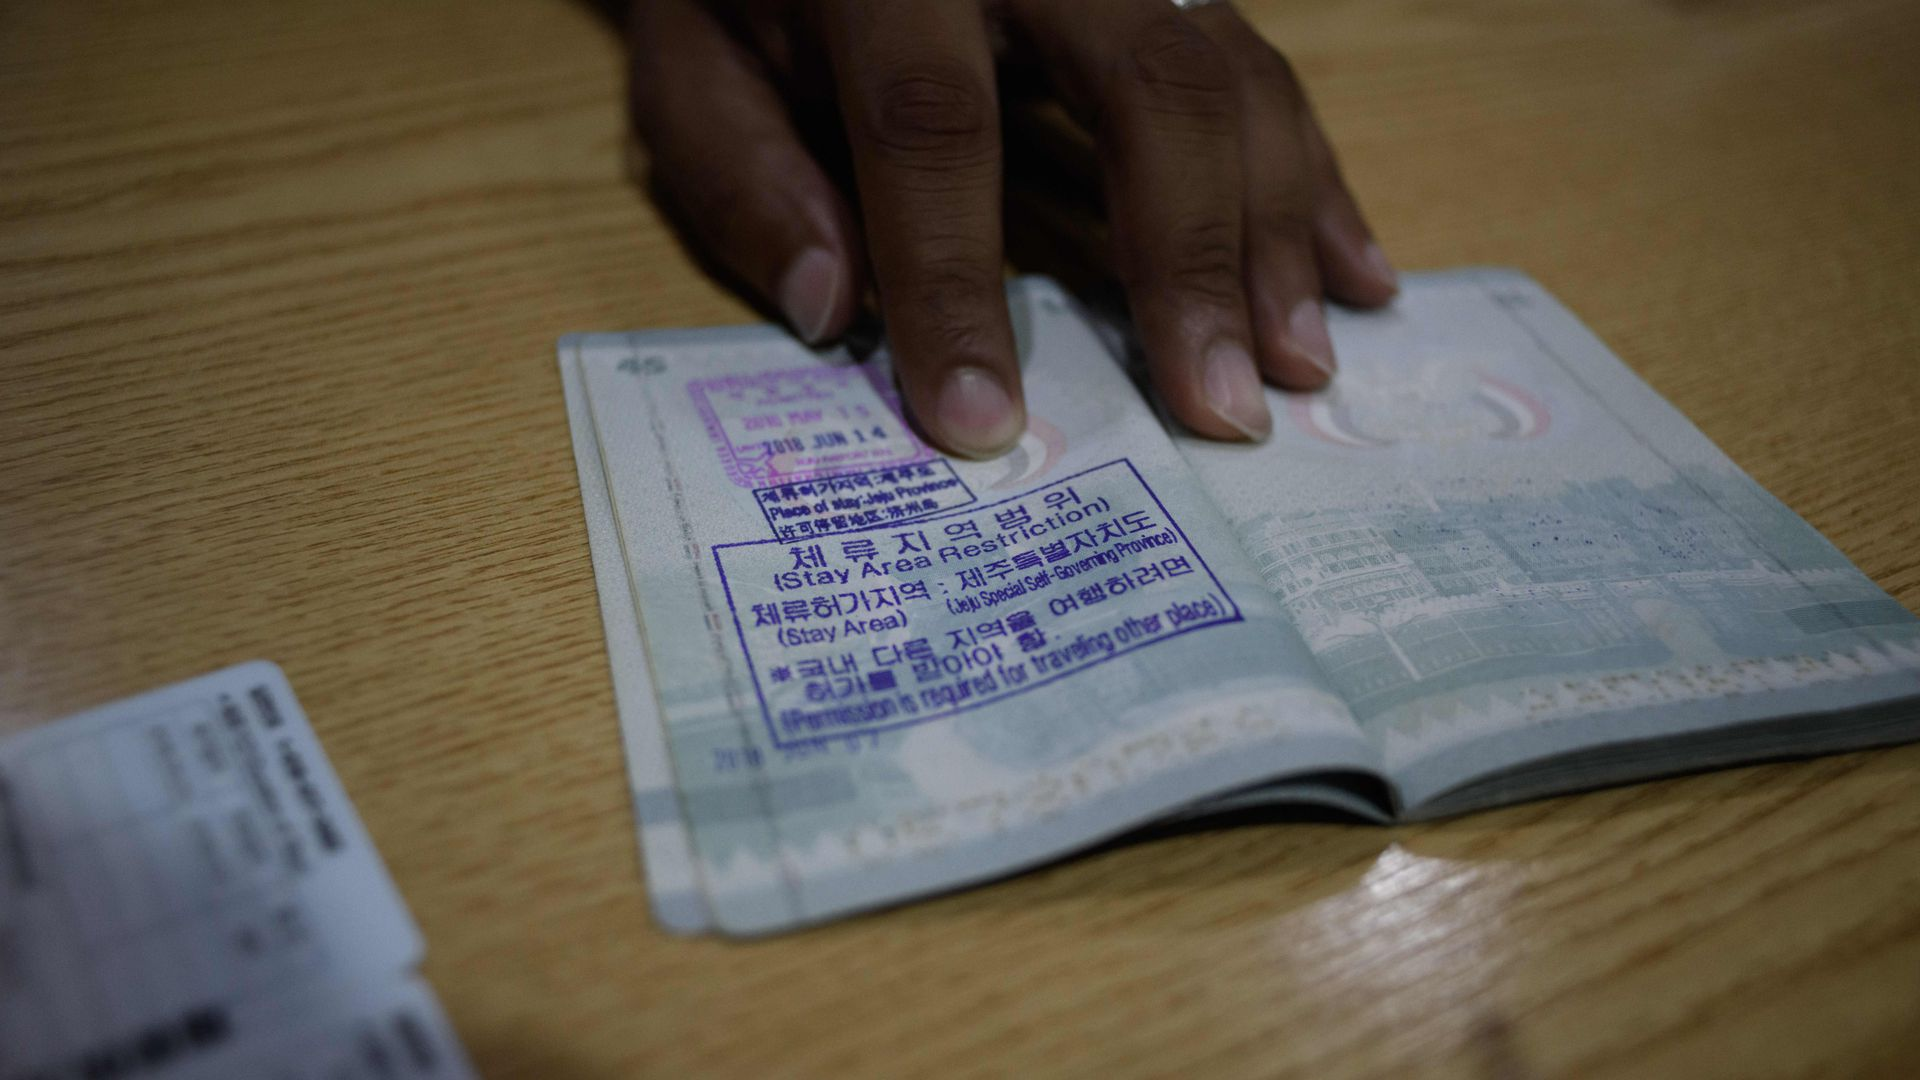 A hand holding open a foreign passport with a stamp in Korean